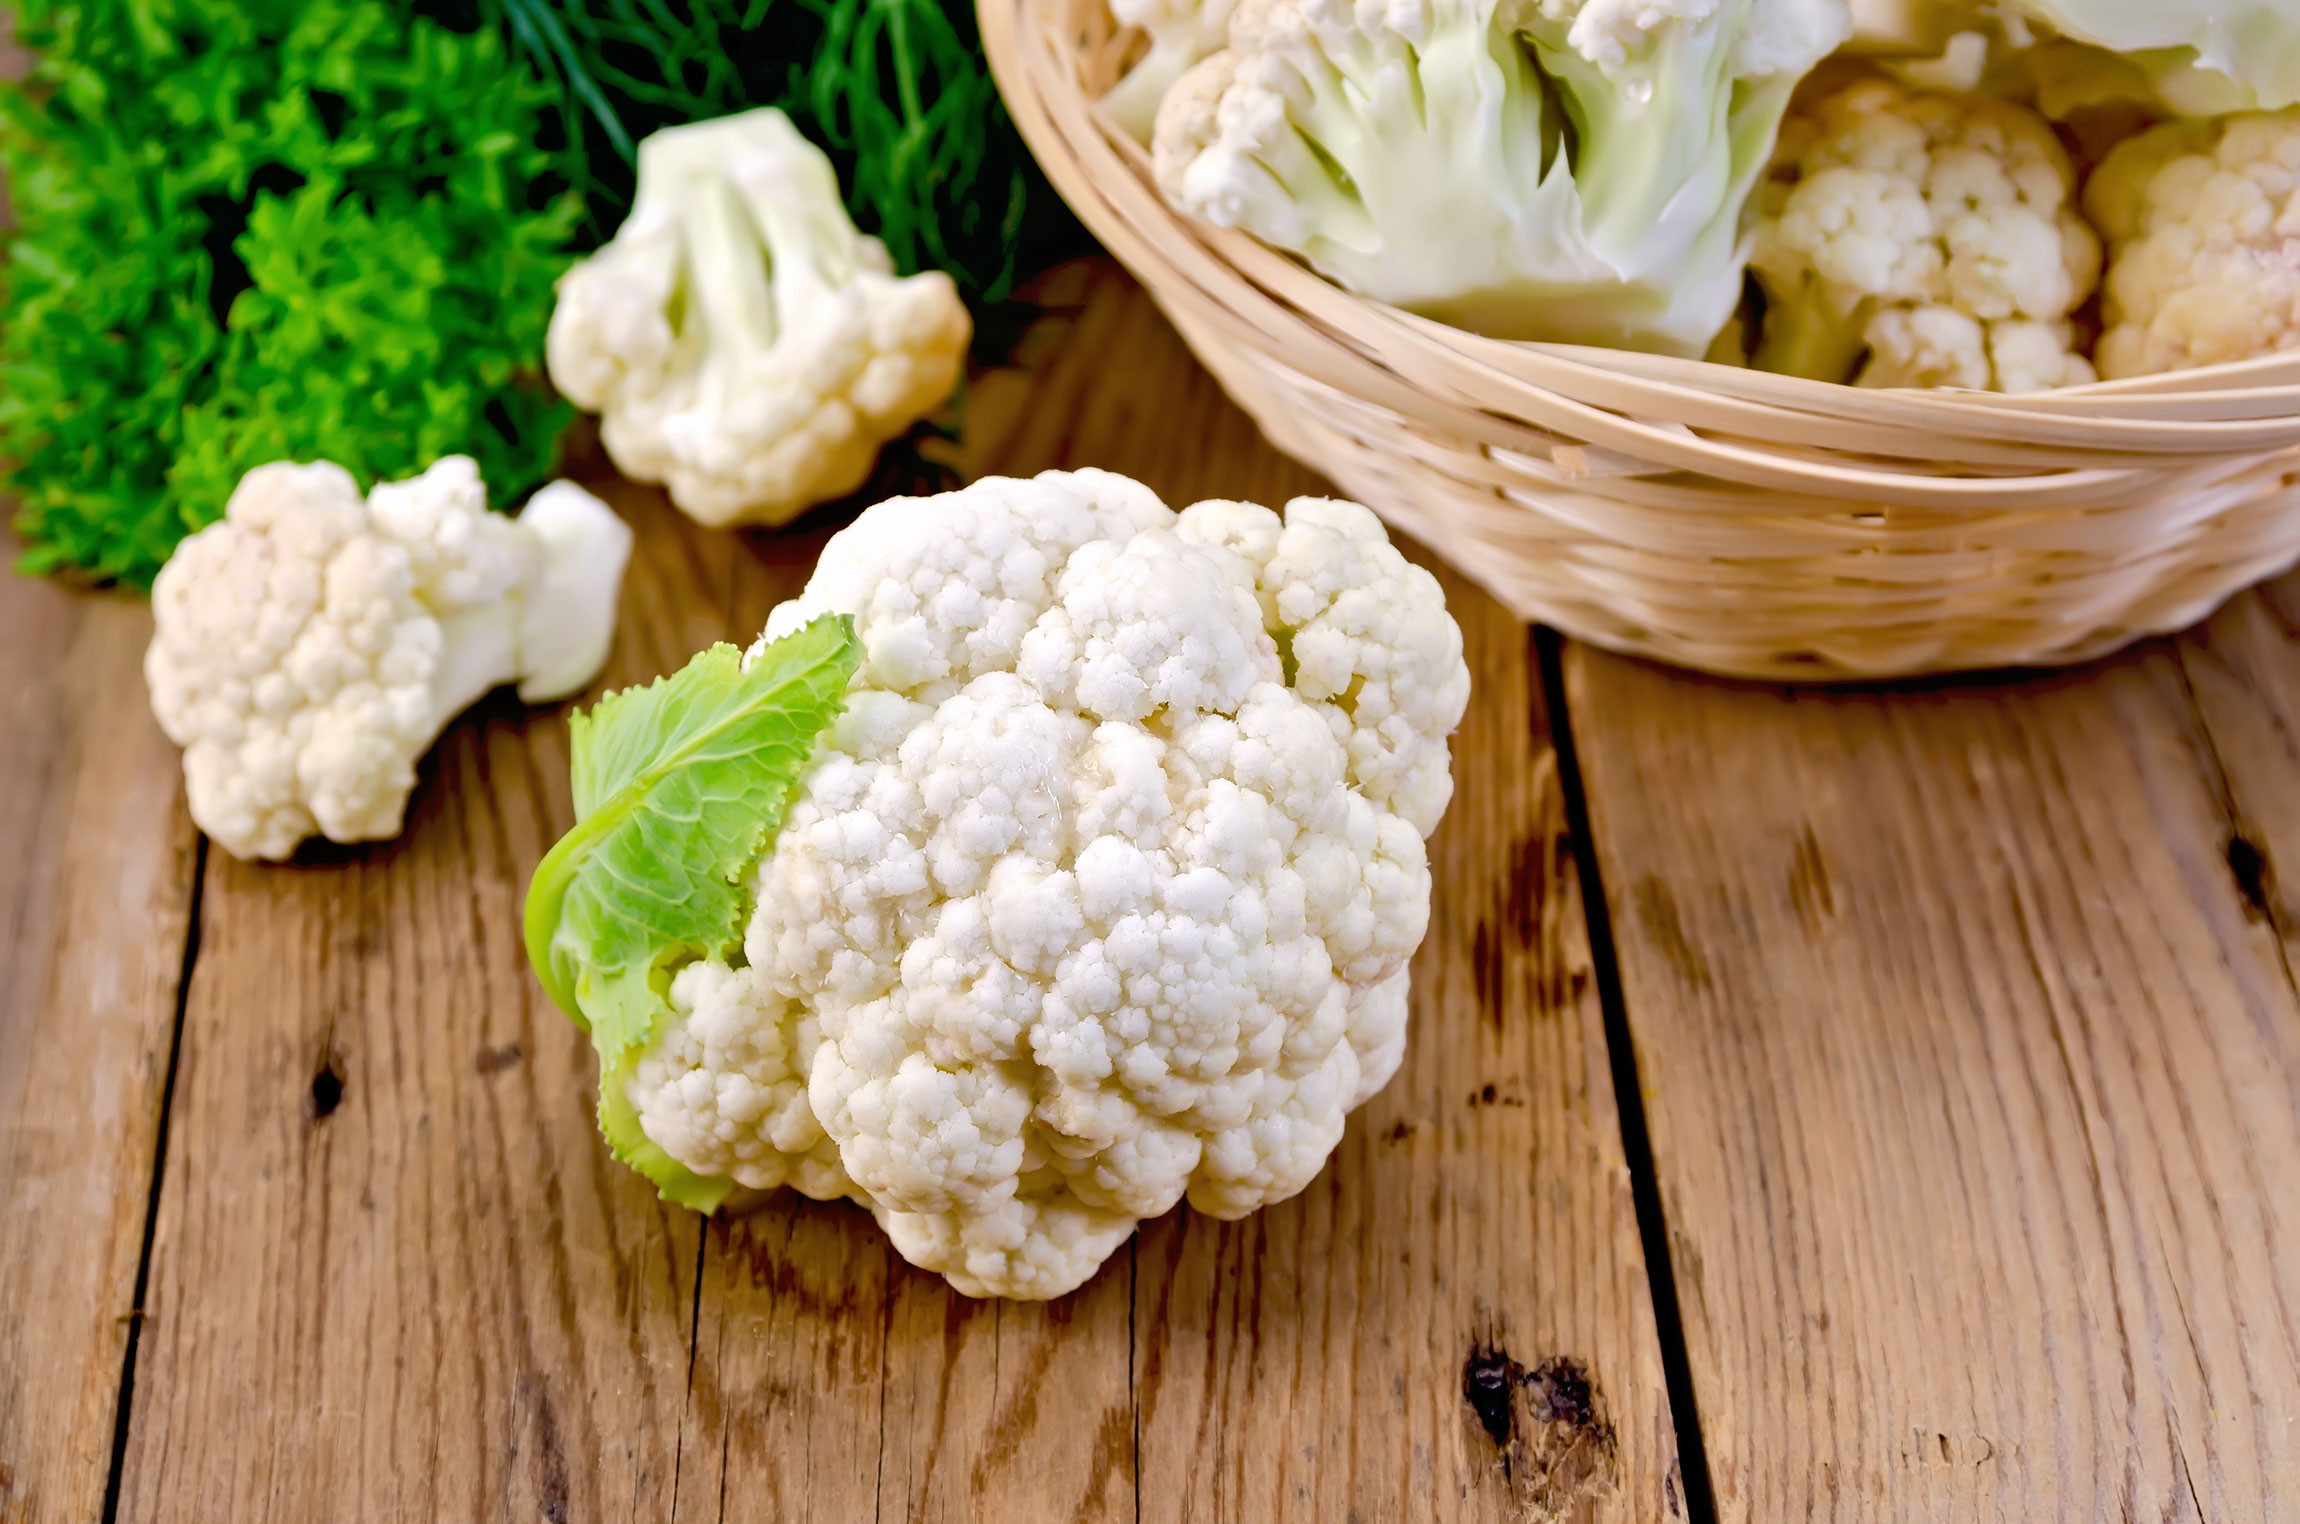 Fall fruits and vegetables: what's in season? Cauliflower